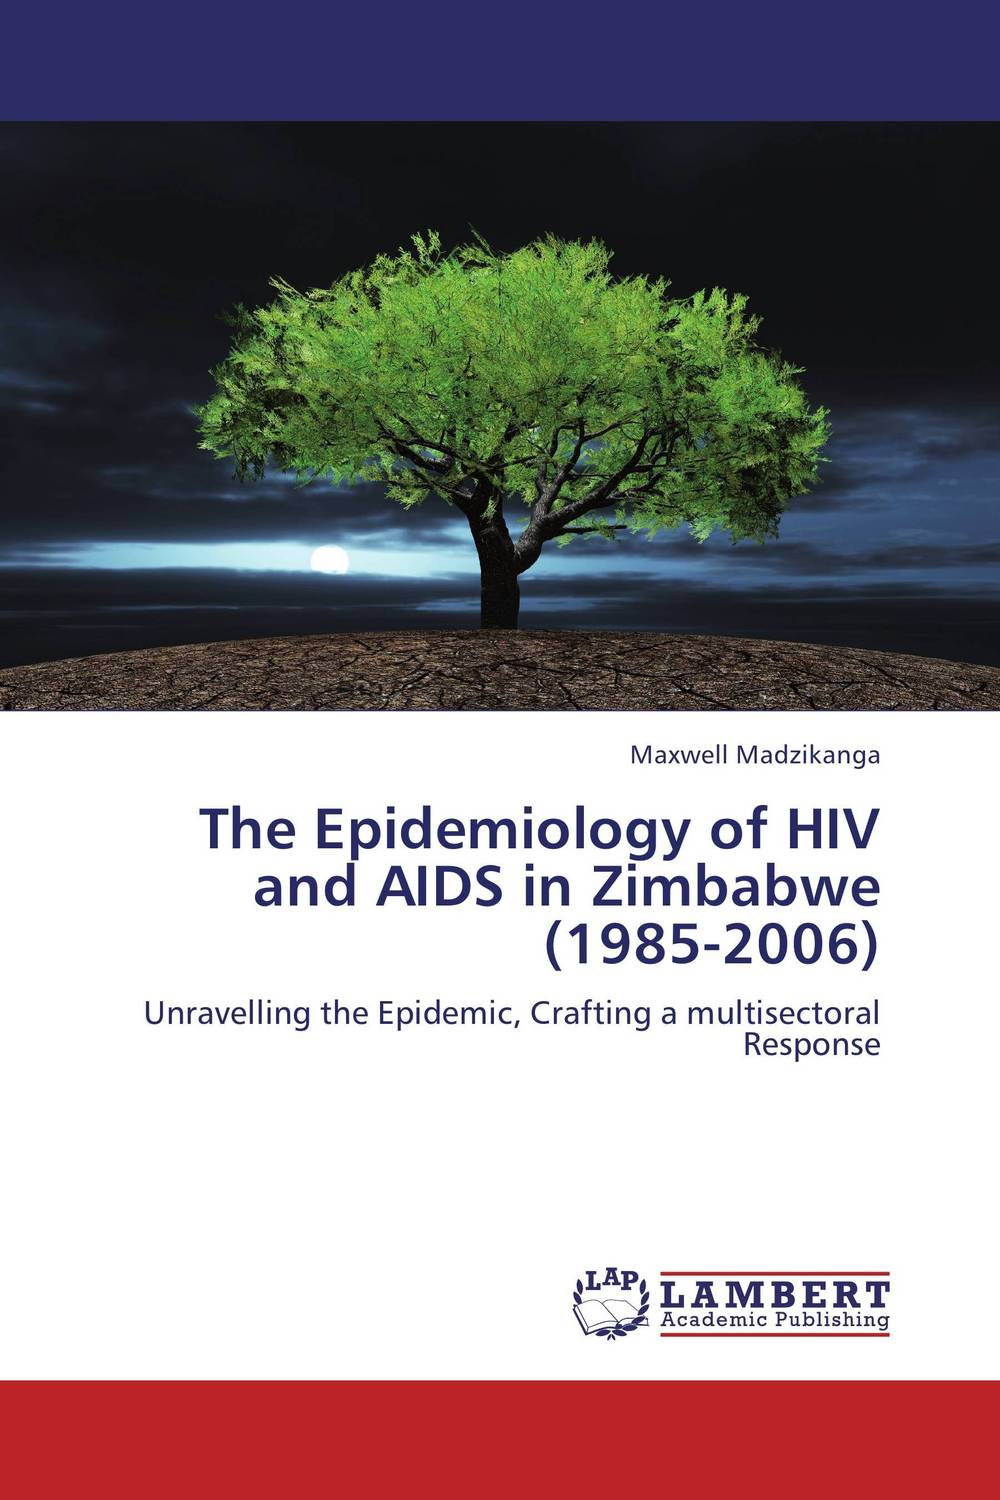 The Epidemiology of HIV and AIDS in Zimbabwe (1985-2006) ways of curbing tax evasion in zimbabwe